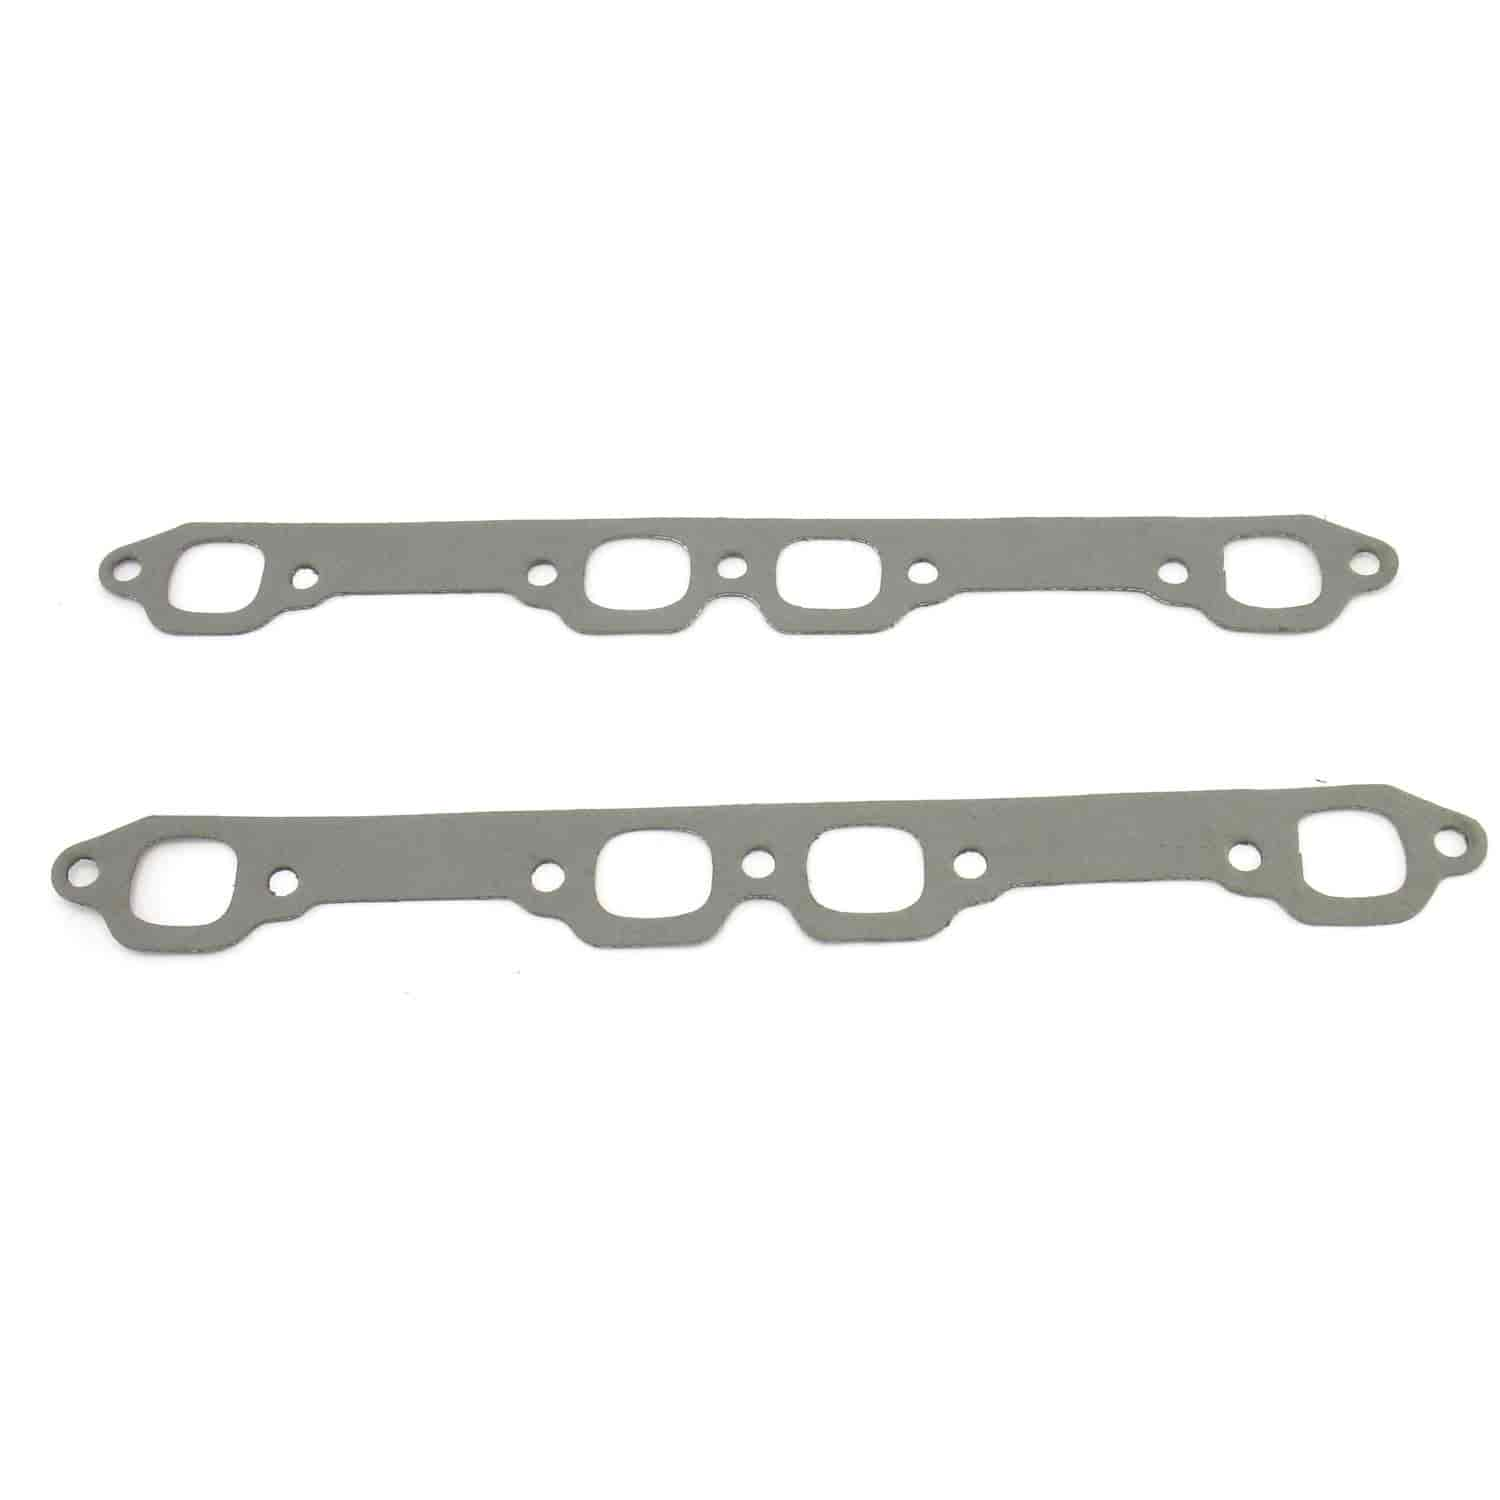 Patriot Exhaust H7589 - Patriot Exhaust Header Flange Gaskets